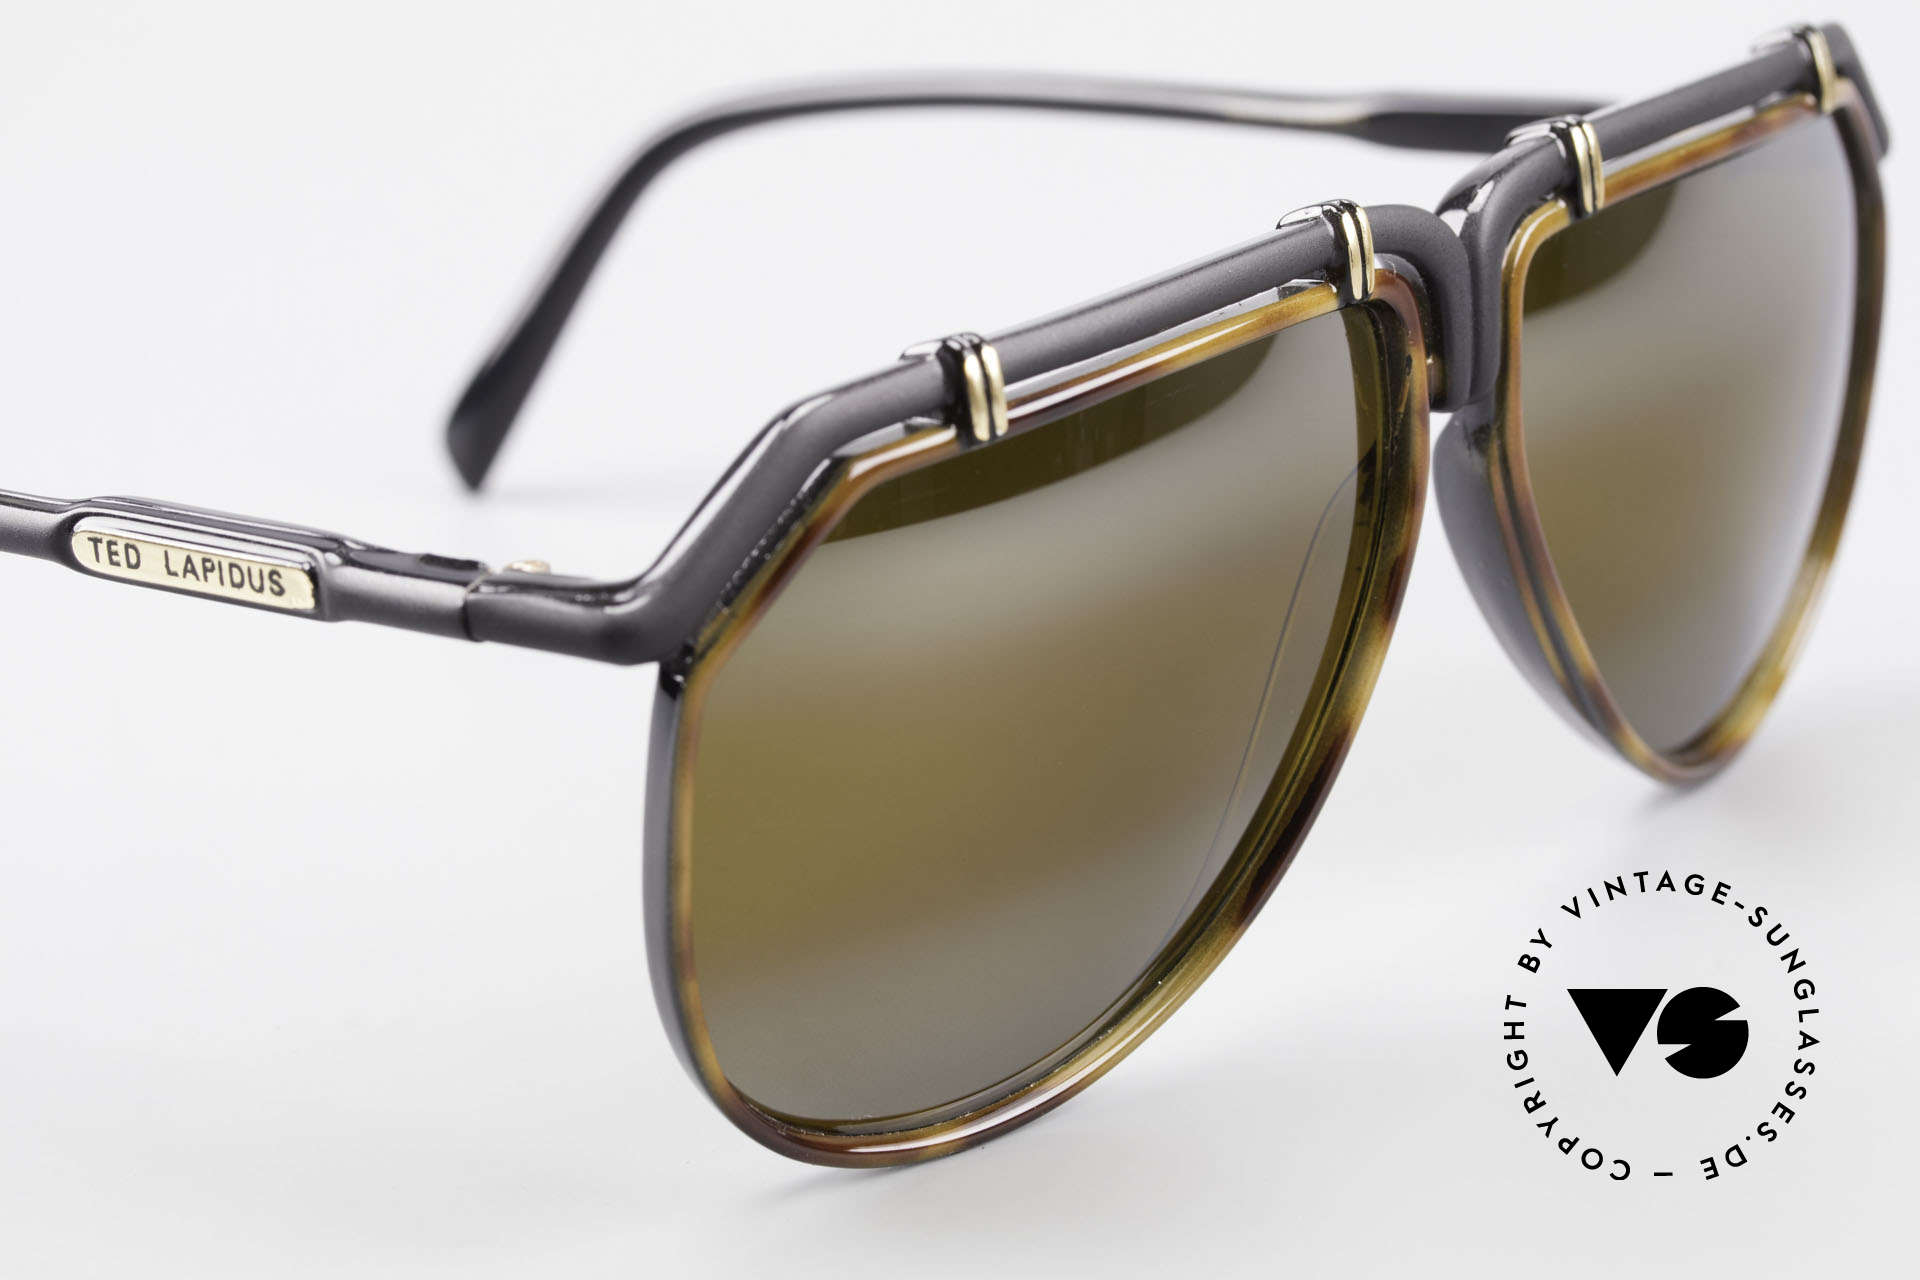 Ted Lapidus 1623 70's Men's Sunglasses Aviator, one of a kind, unworn, a must have for fashion lovers, Made for Men